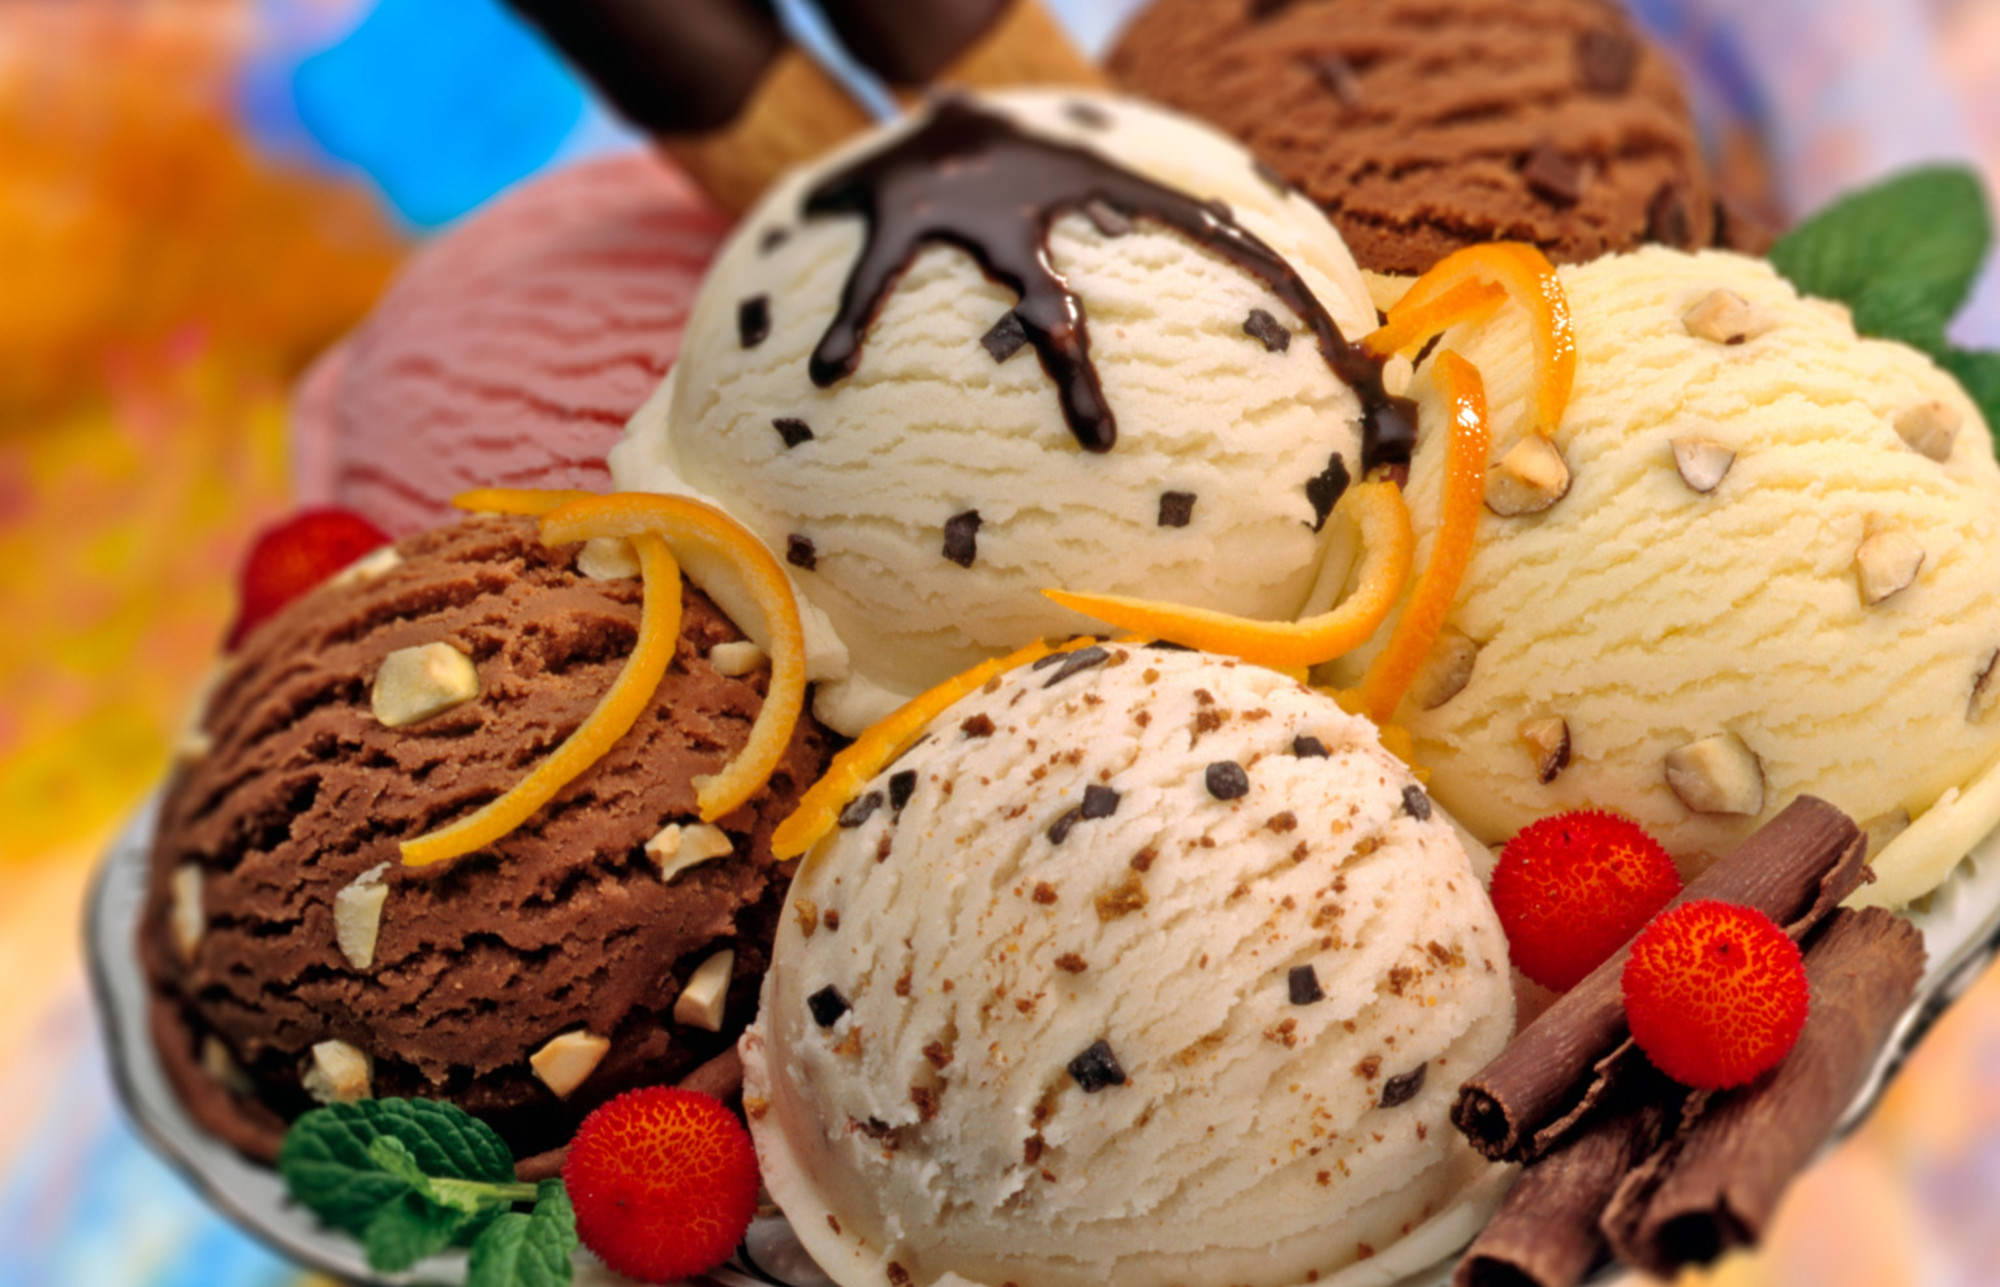 Ice-Cream Wallpaper